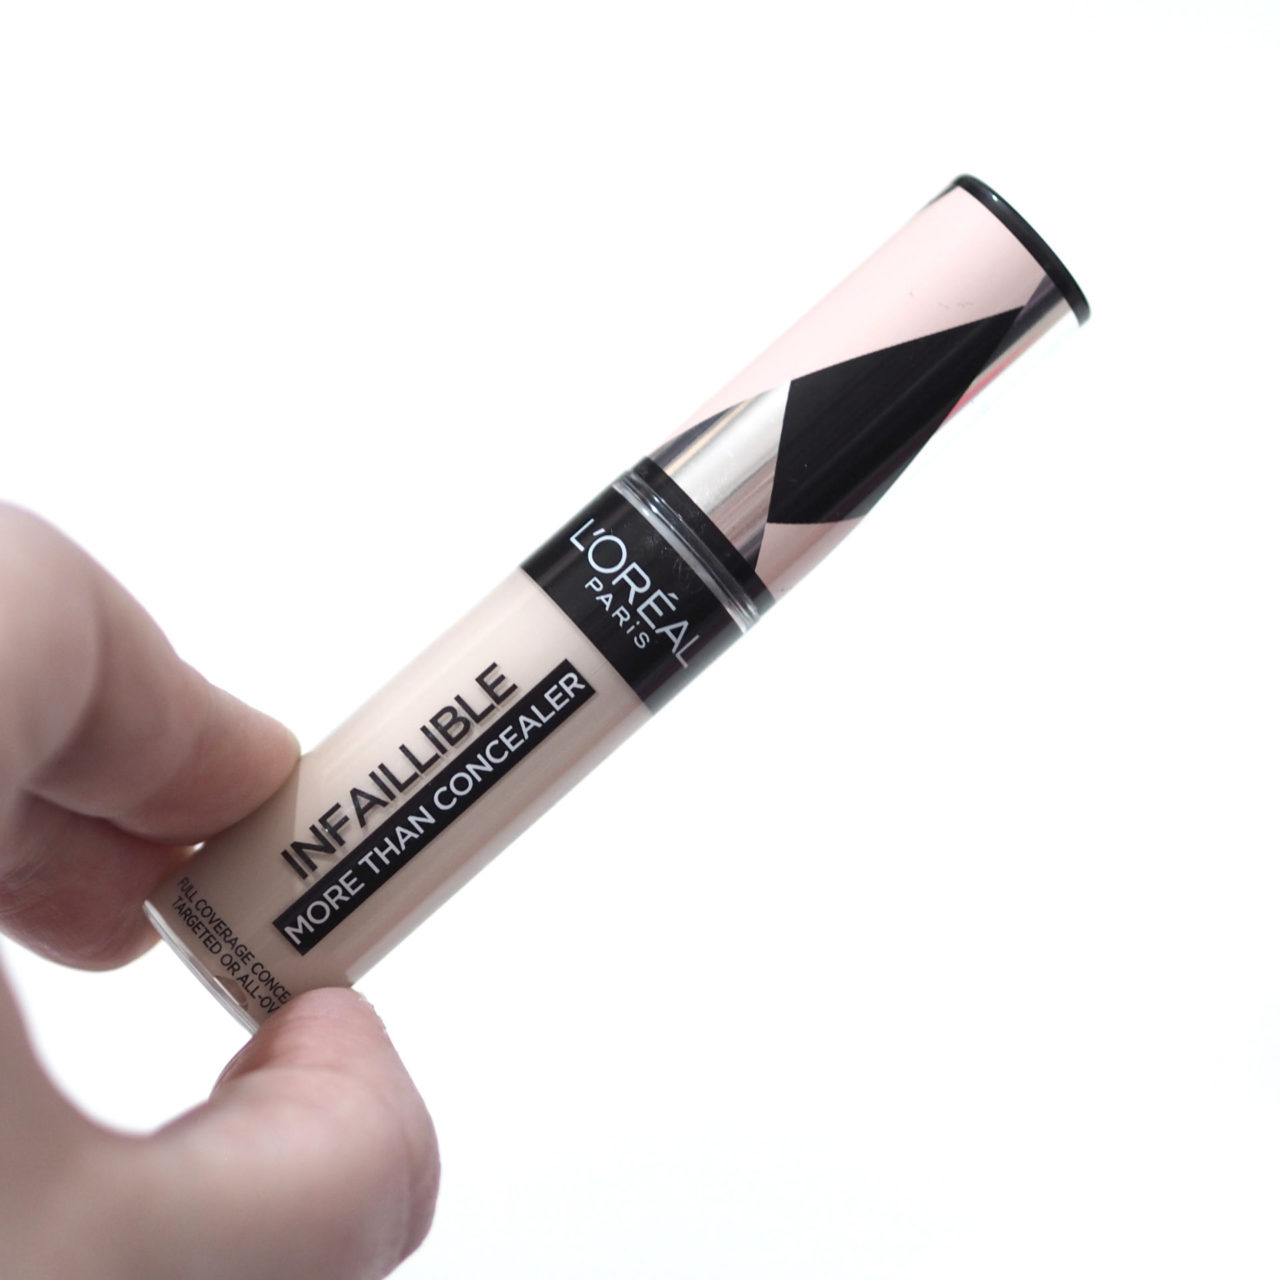 L'Oreal Infallible More Than Concealer in Porcelain 320 Review / Swatches